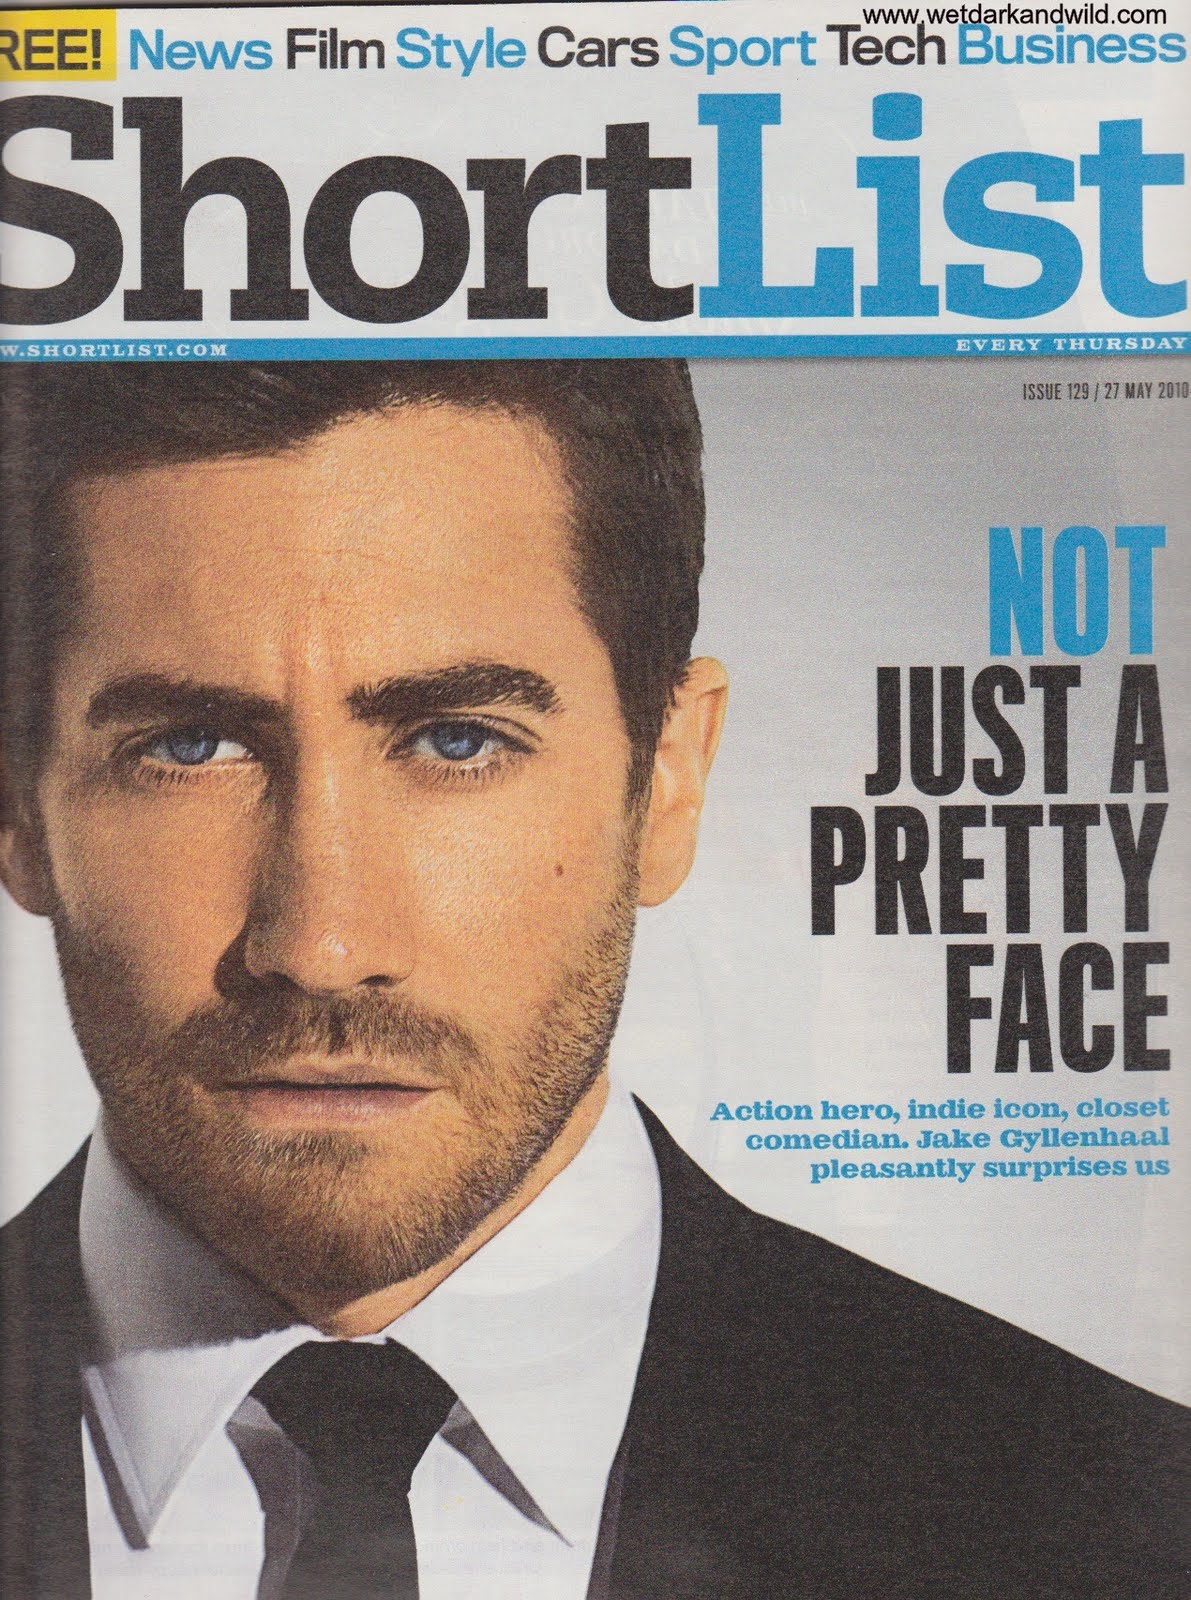 Shortlist magazine 2010